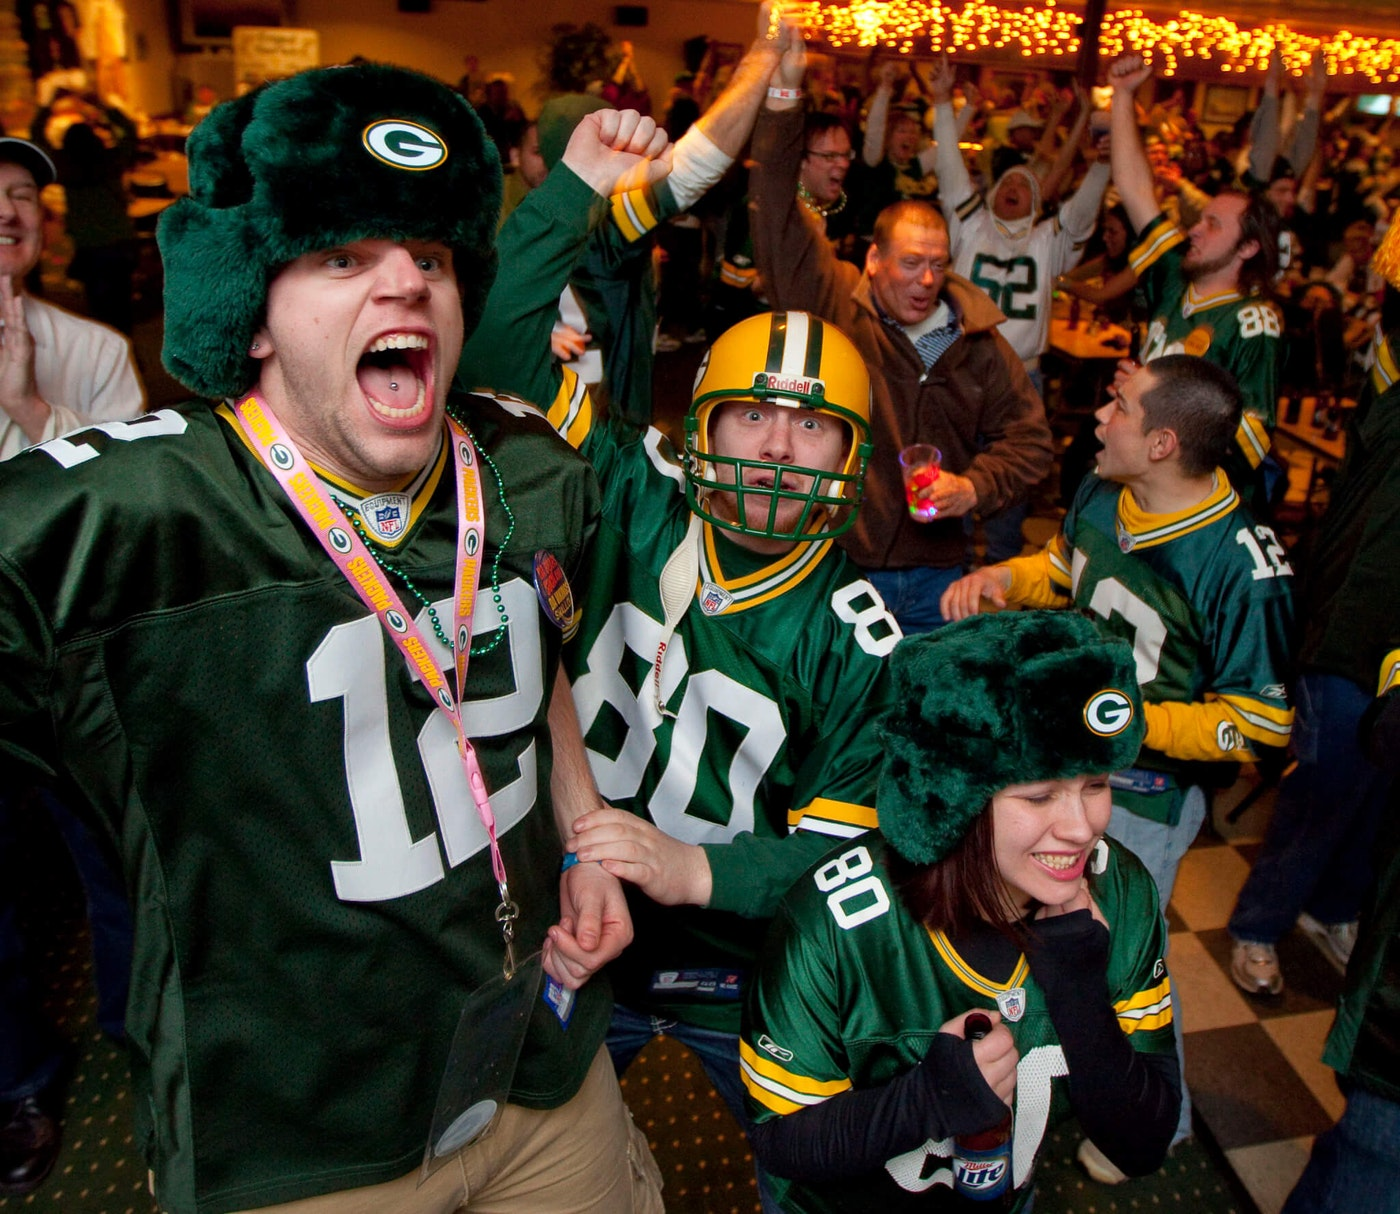 Green Bay Packers fans celebrate Sunday, Feb. 6, 2011, at the Stadium View Bar near Lambeau Field in Green Bay, Wis. after the Packers won Super Bowl XLV. (AP Photo/Mike Roemer)